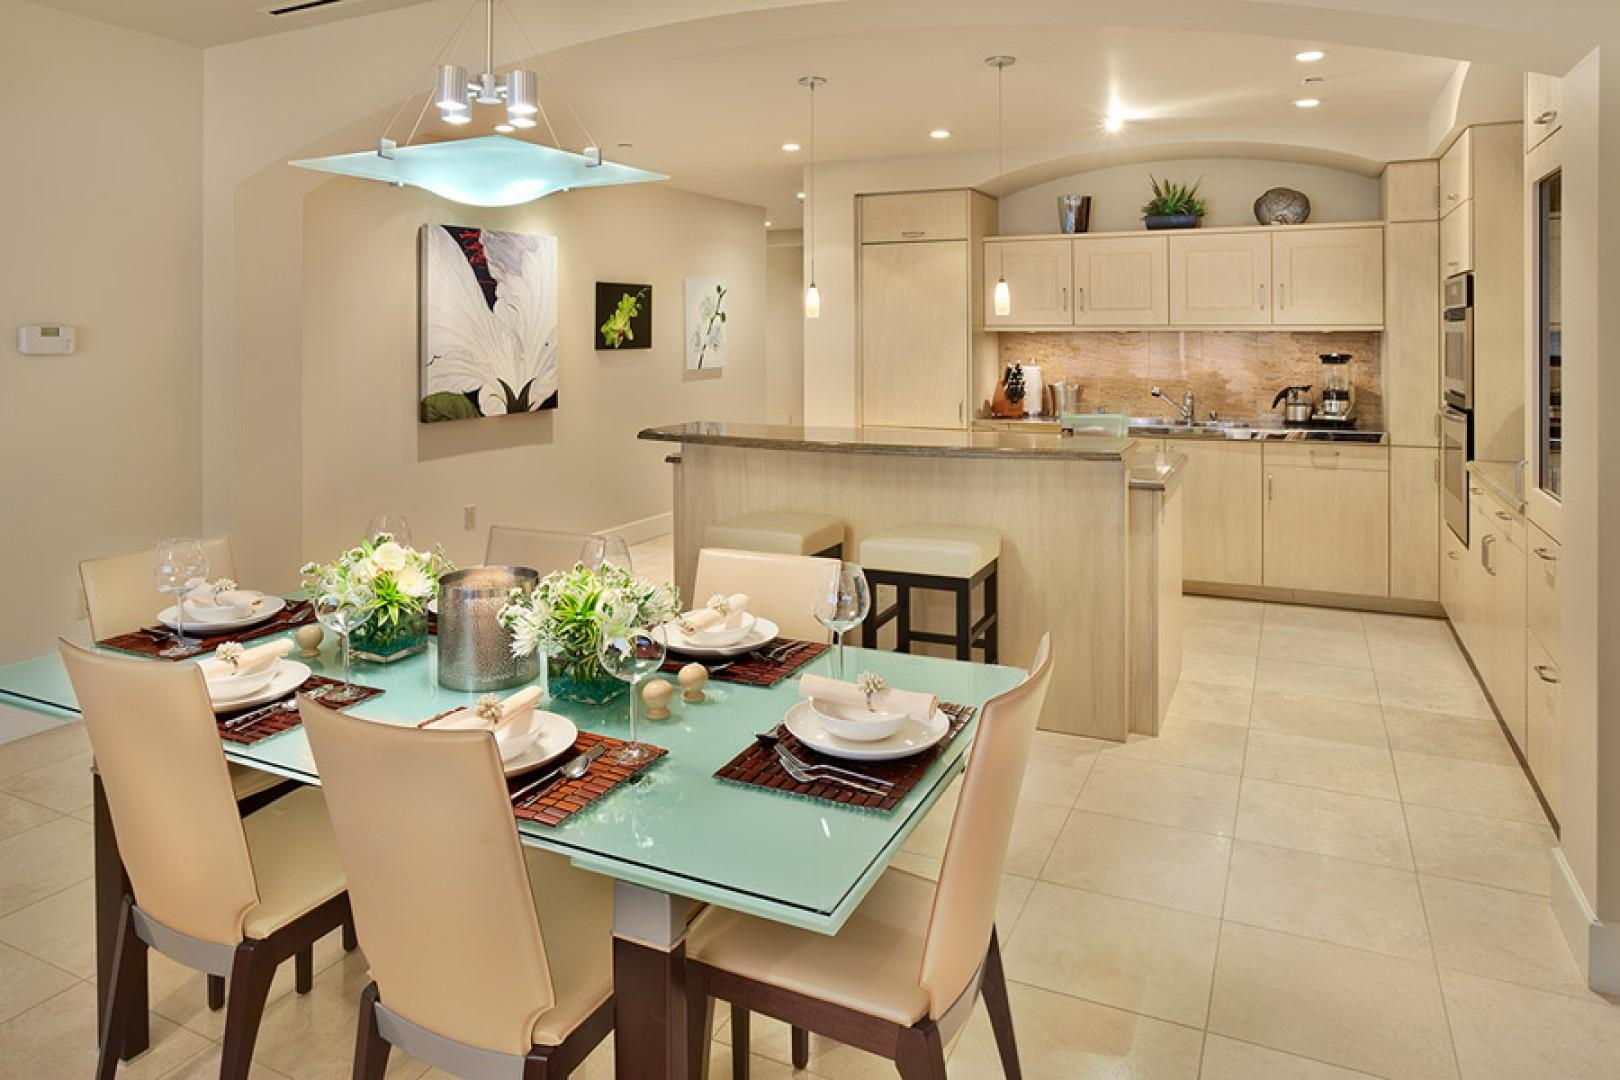 Gourmet kitchen and dining area with imported European cabinetry, granite counters, and an exceptional array of kitchen supplies.